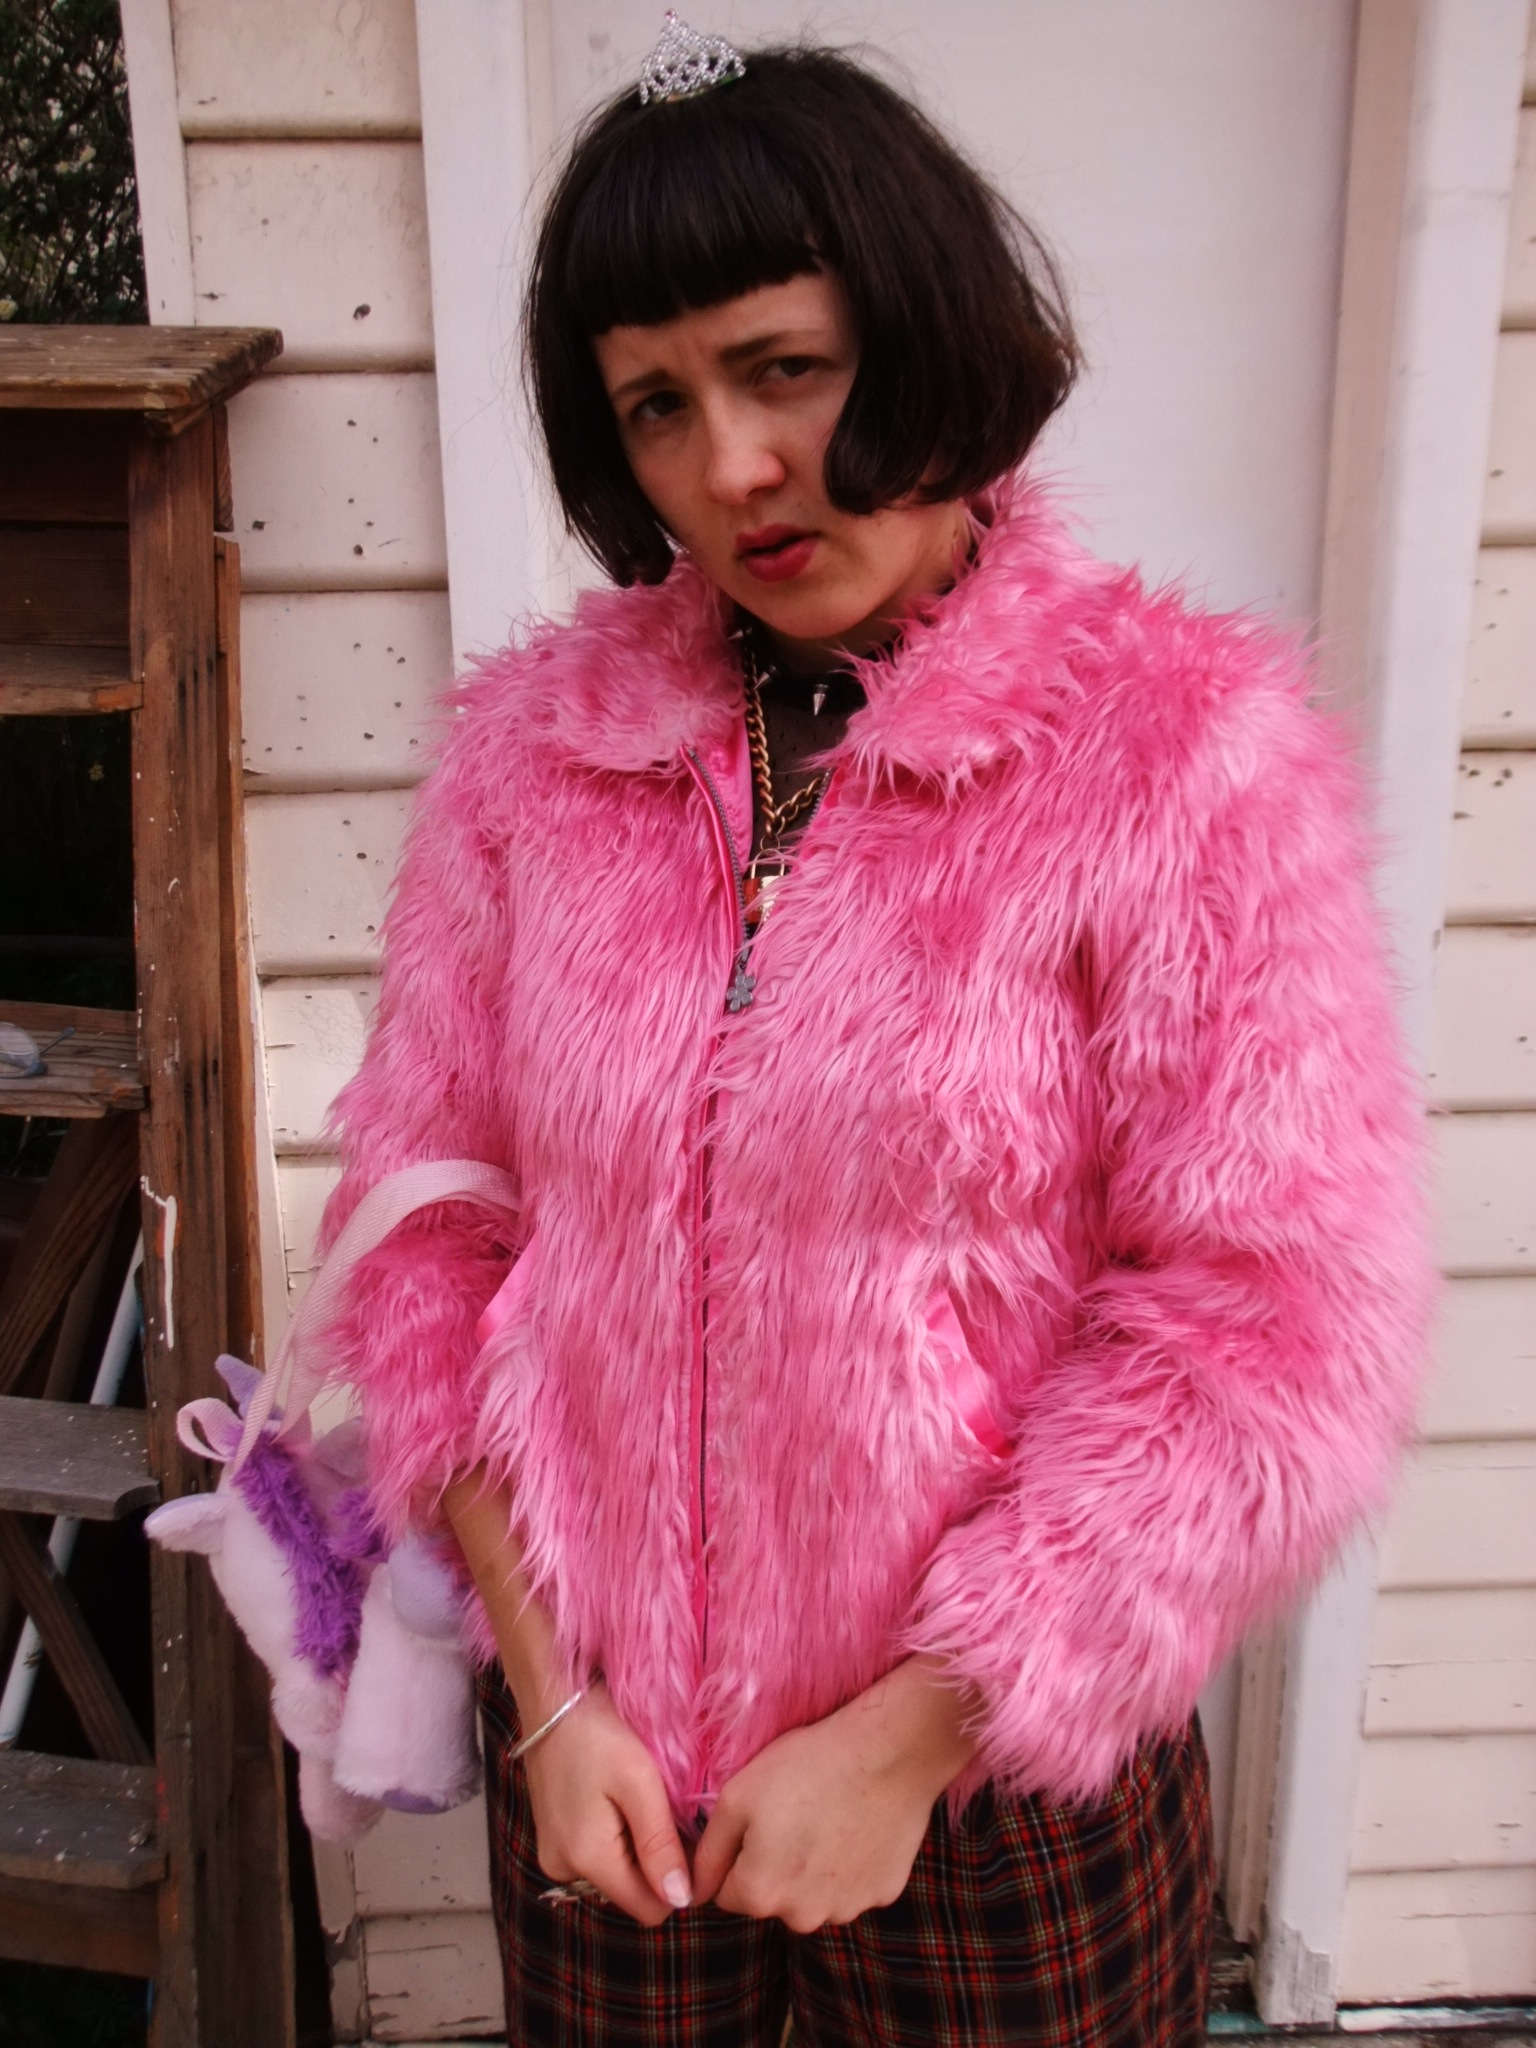 PunksumoVintage | Cute 1990s early 2000s fluffy pink jacket